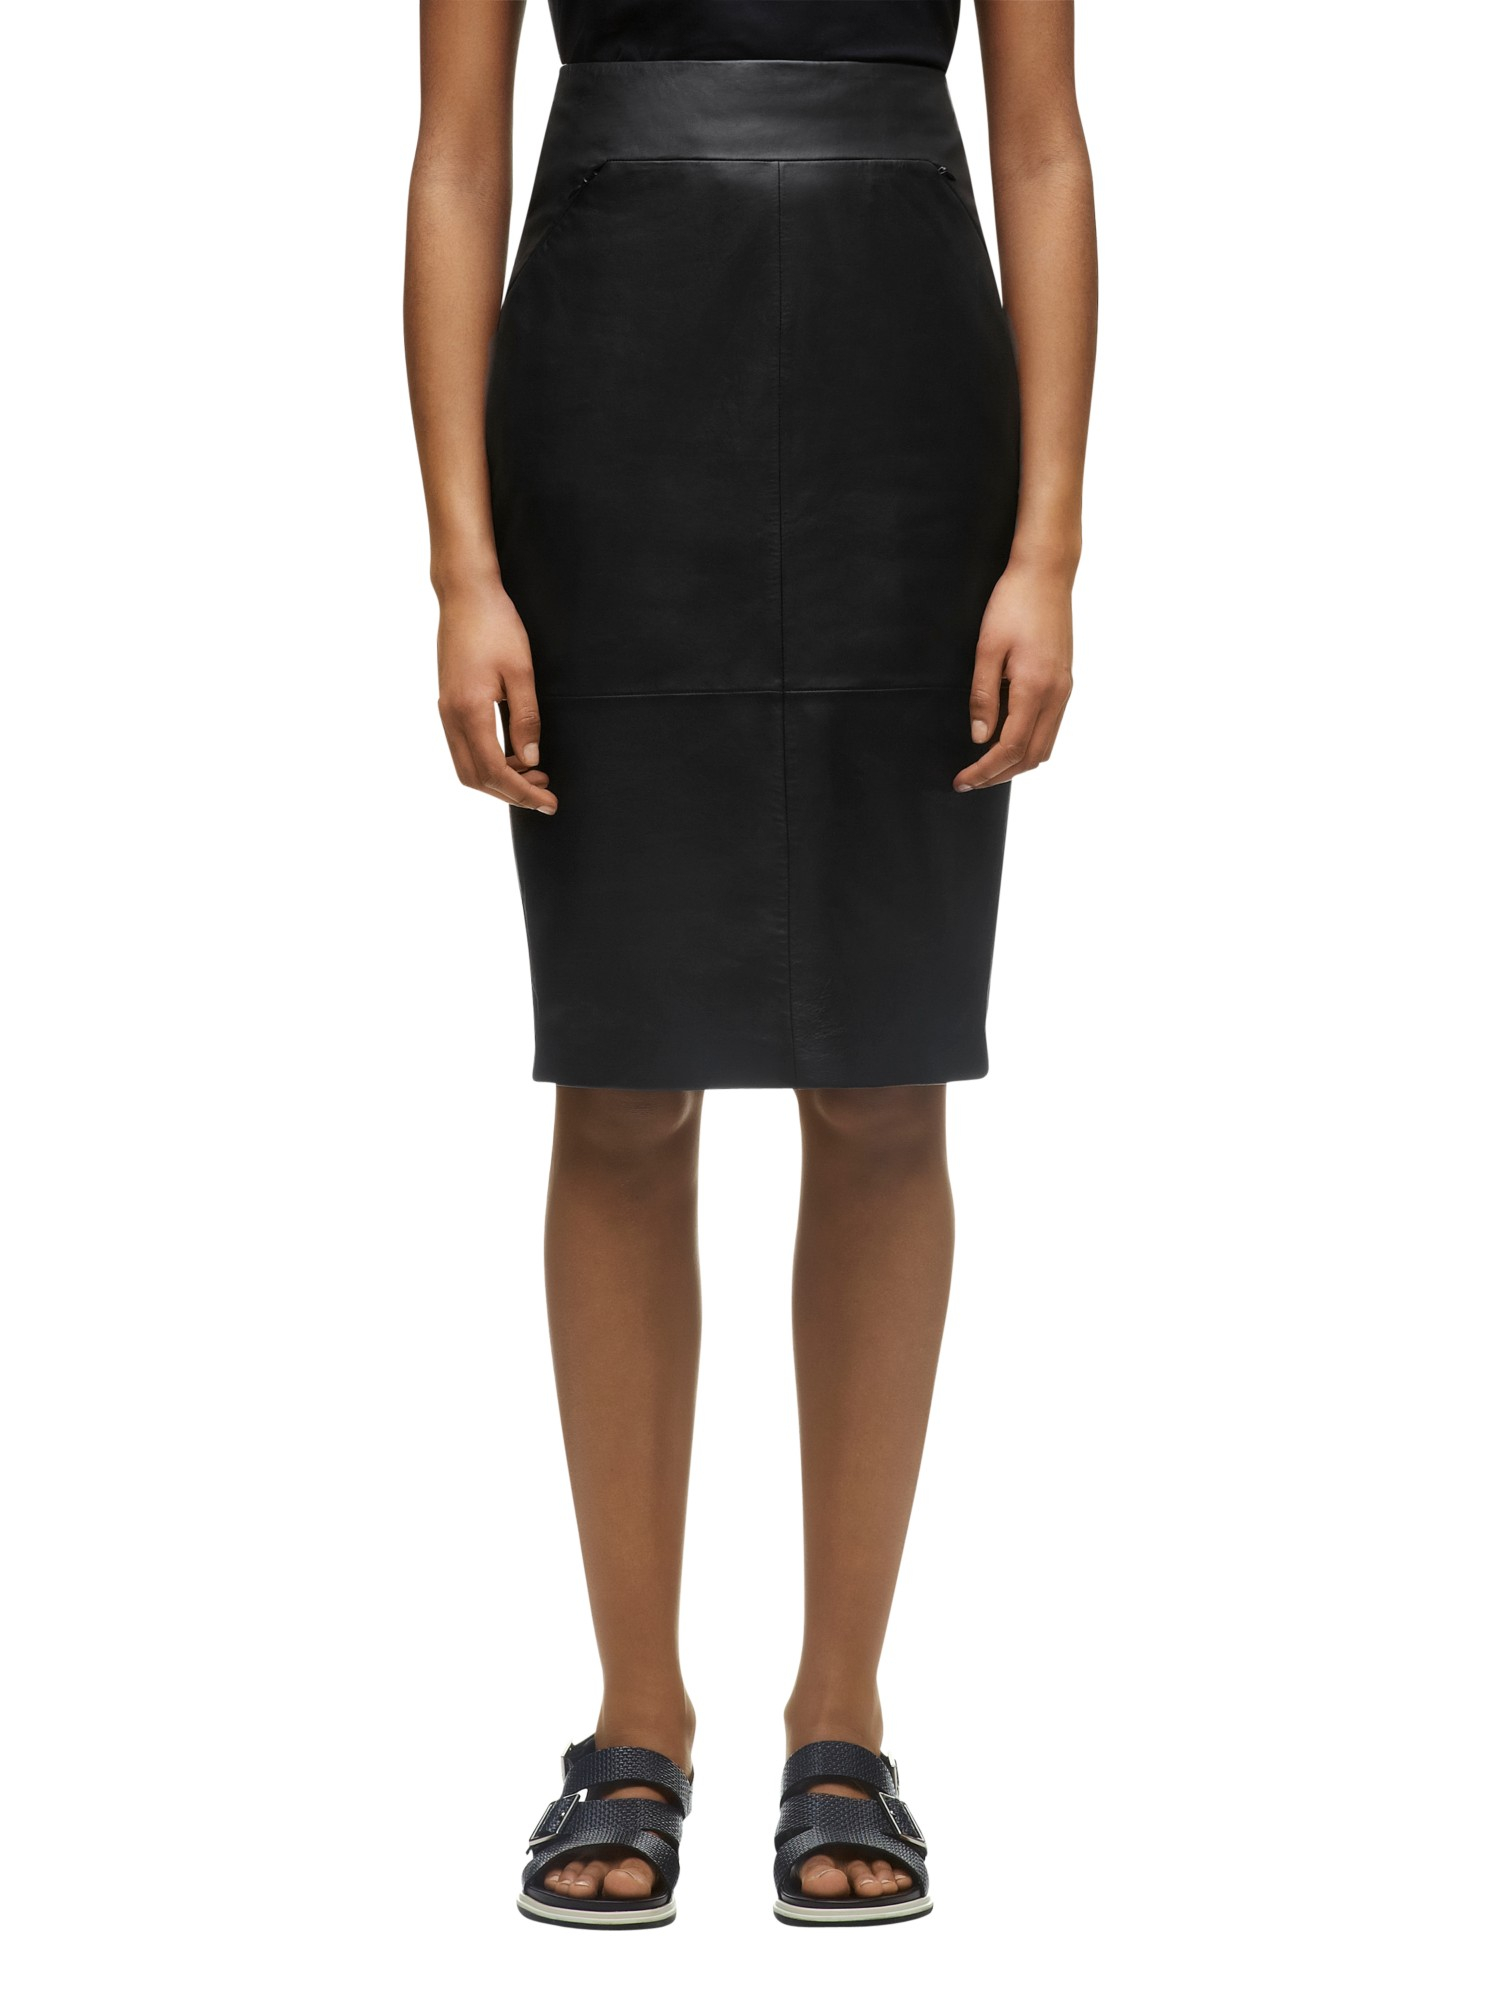 whistles dixie leather pencil skirt in black lyst